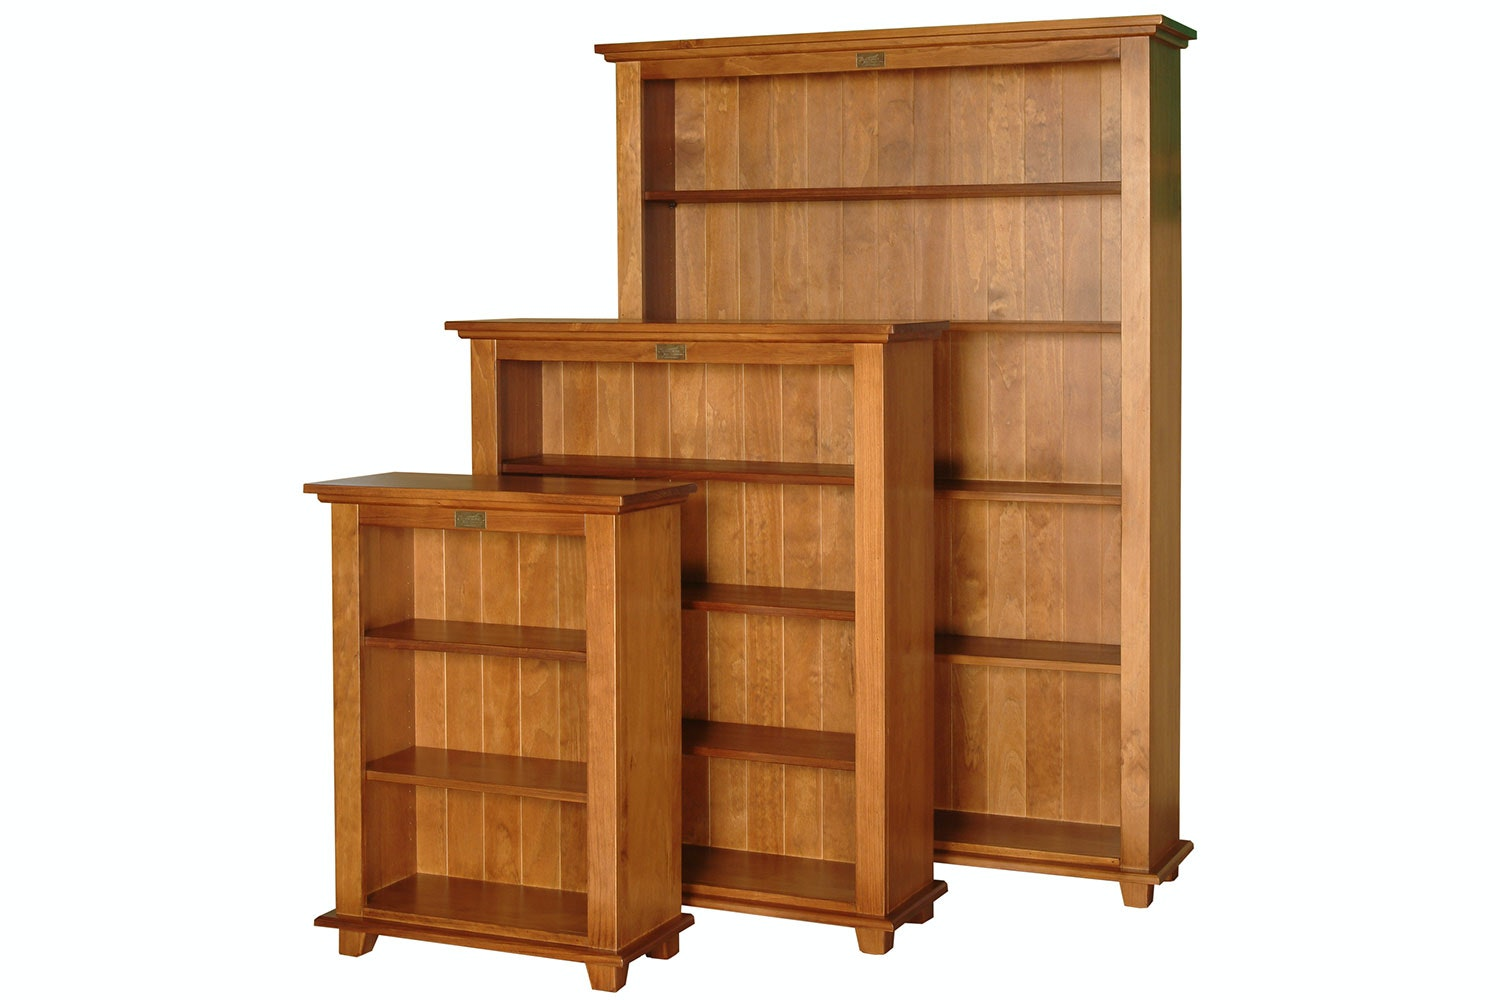 Ferngrove Bookcase 1200x600 by Coastwood Furniture